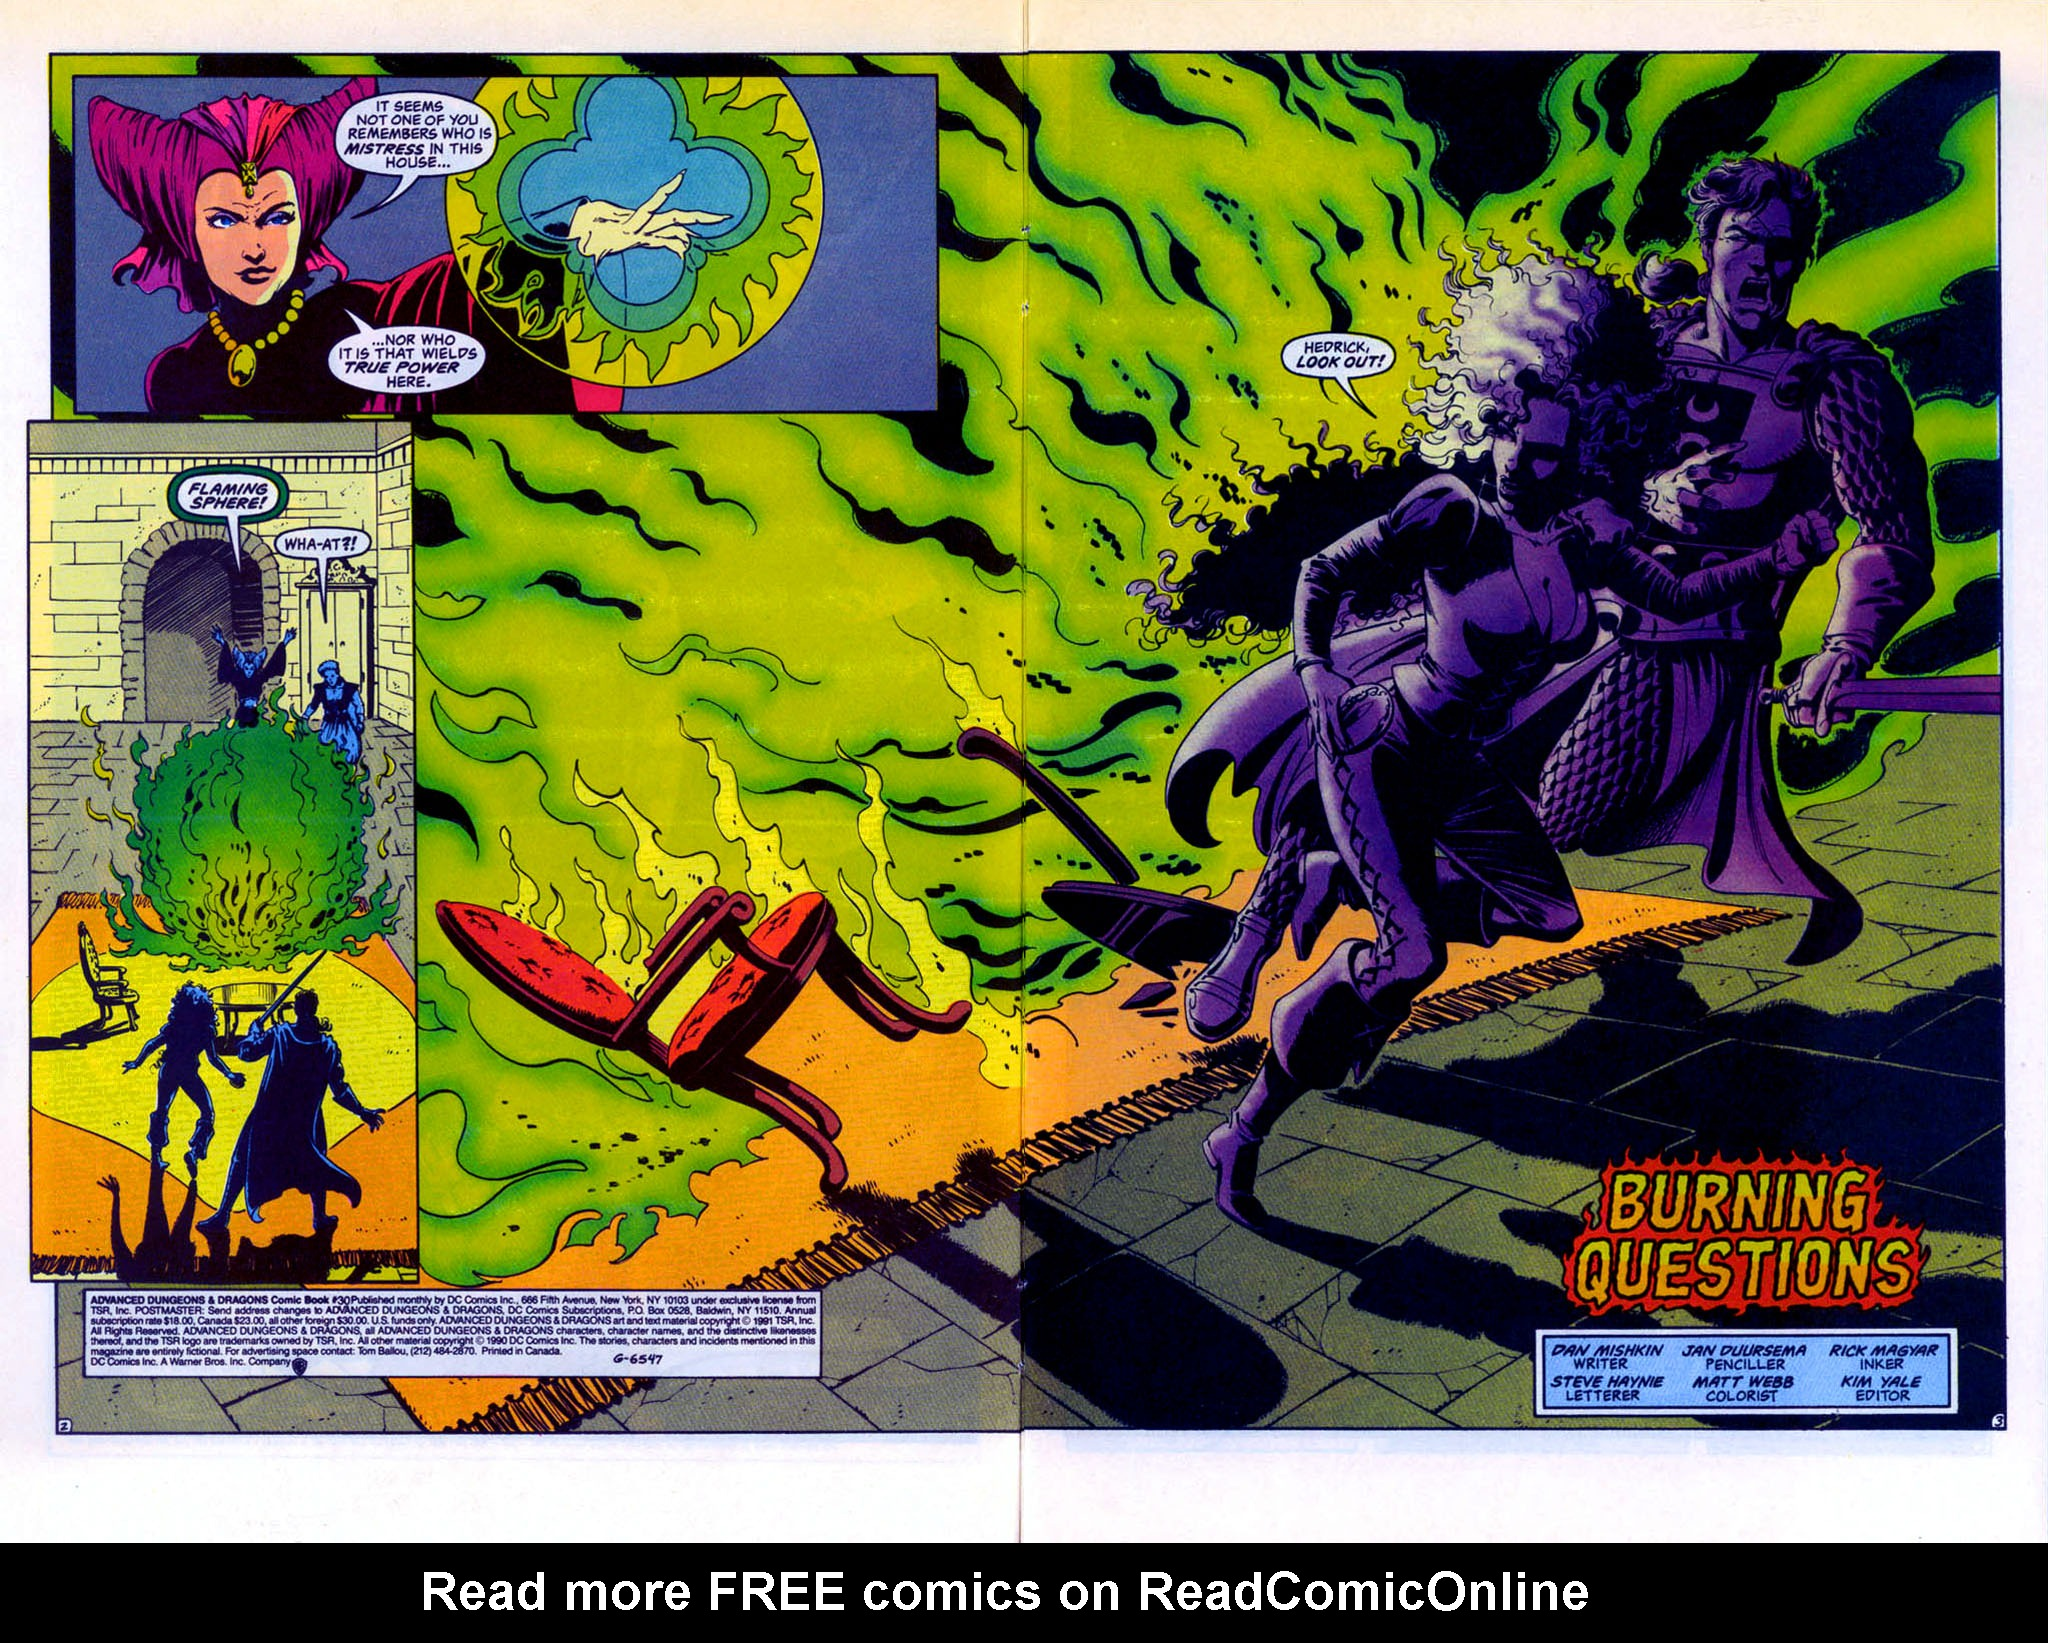 Read online Advanced Dungeons & Dragons comic -  Issue #30 - 3